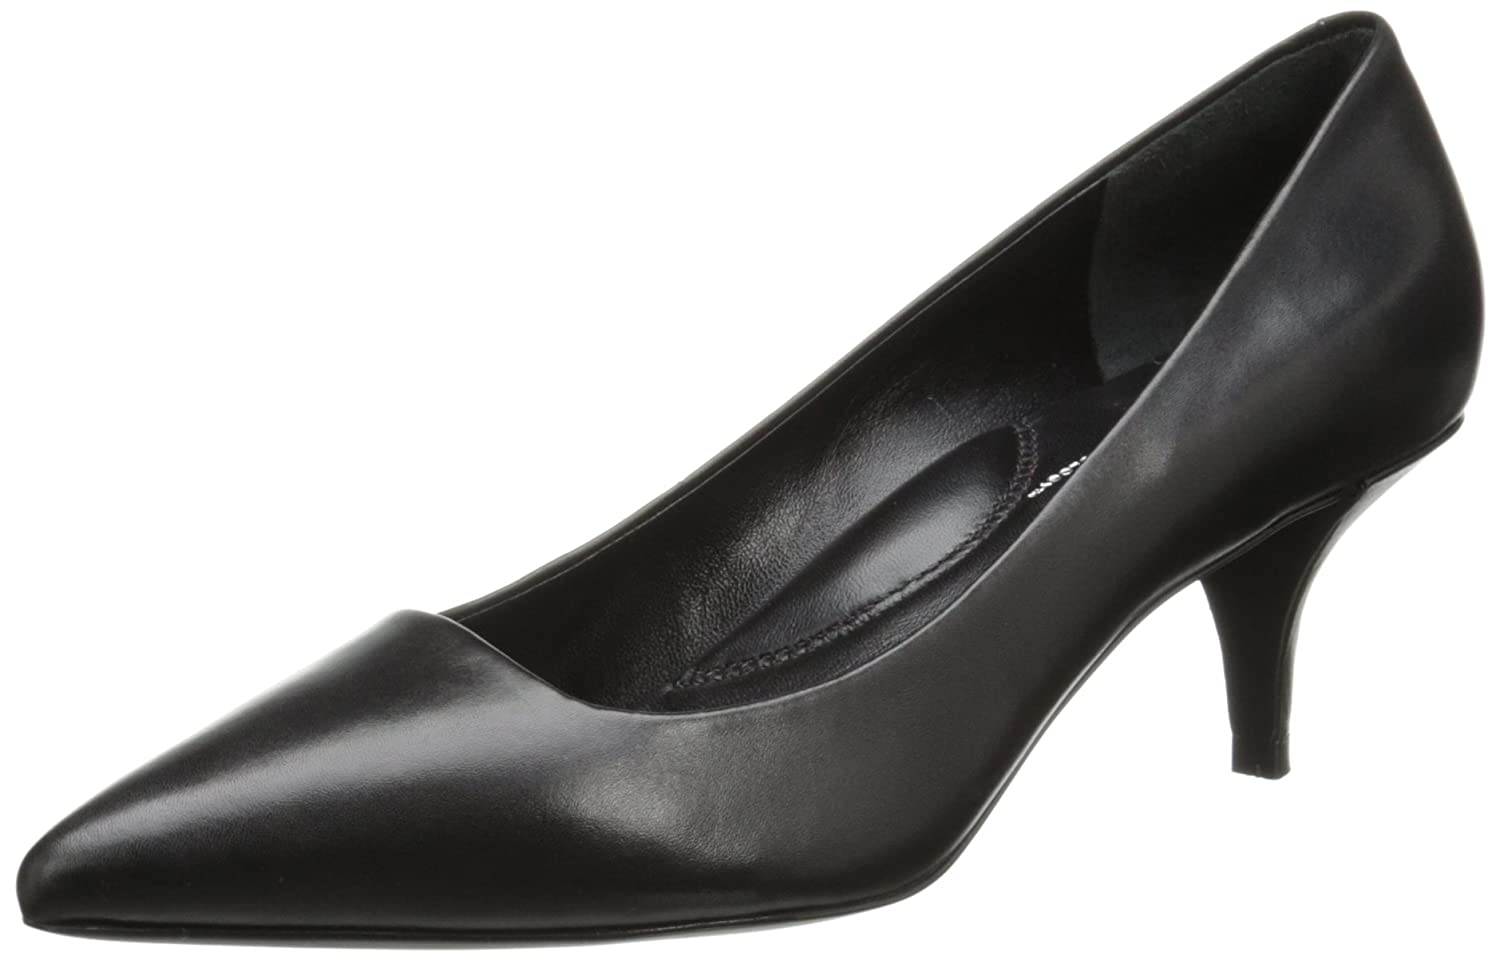 240f547af0ce8 Kenneth Cole New York Women's Pearl Dress Pump